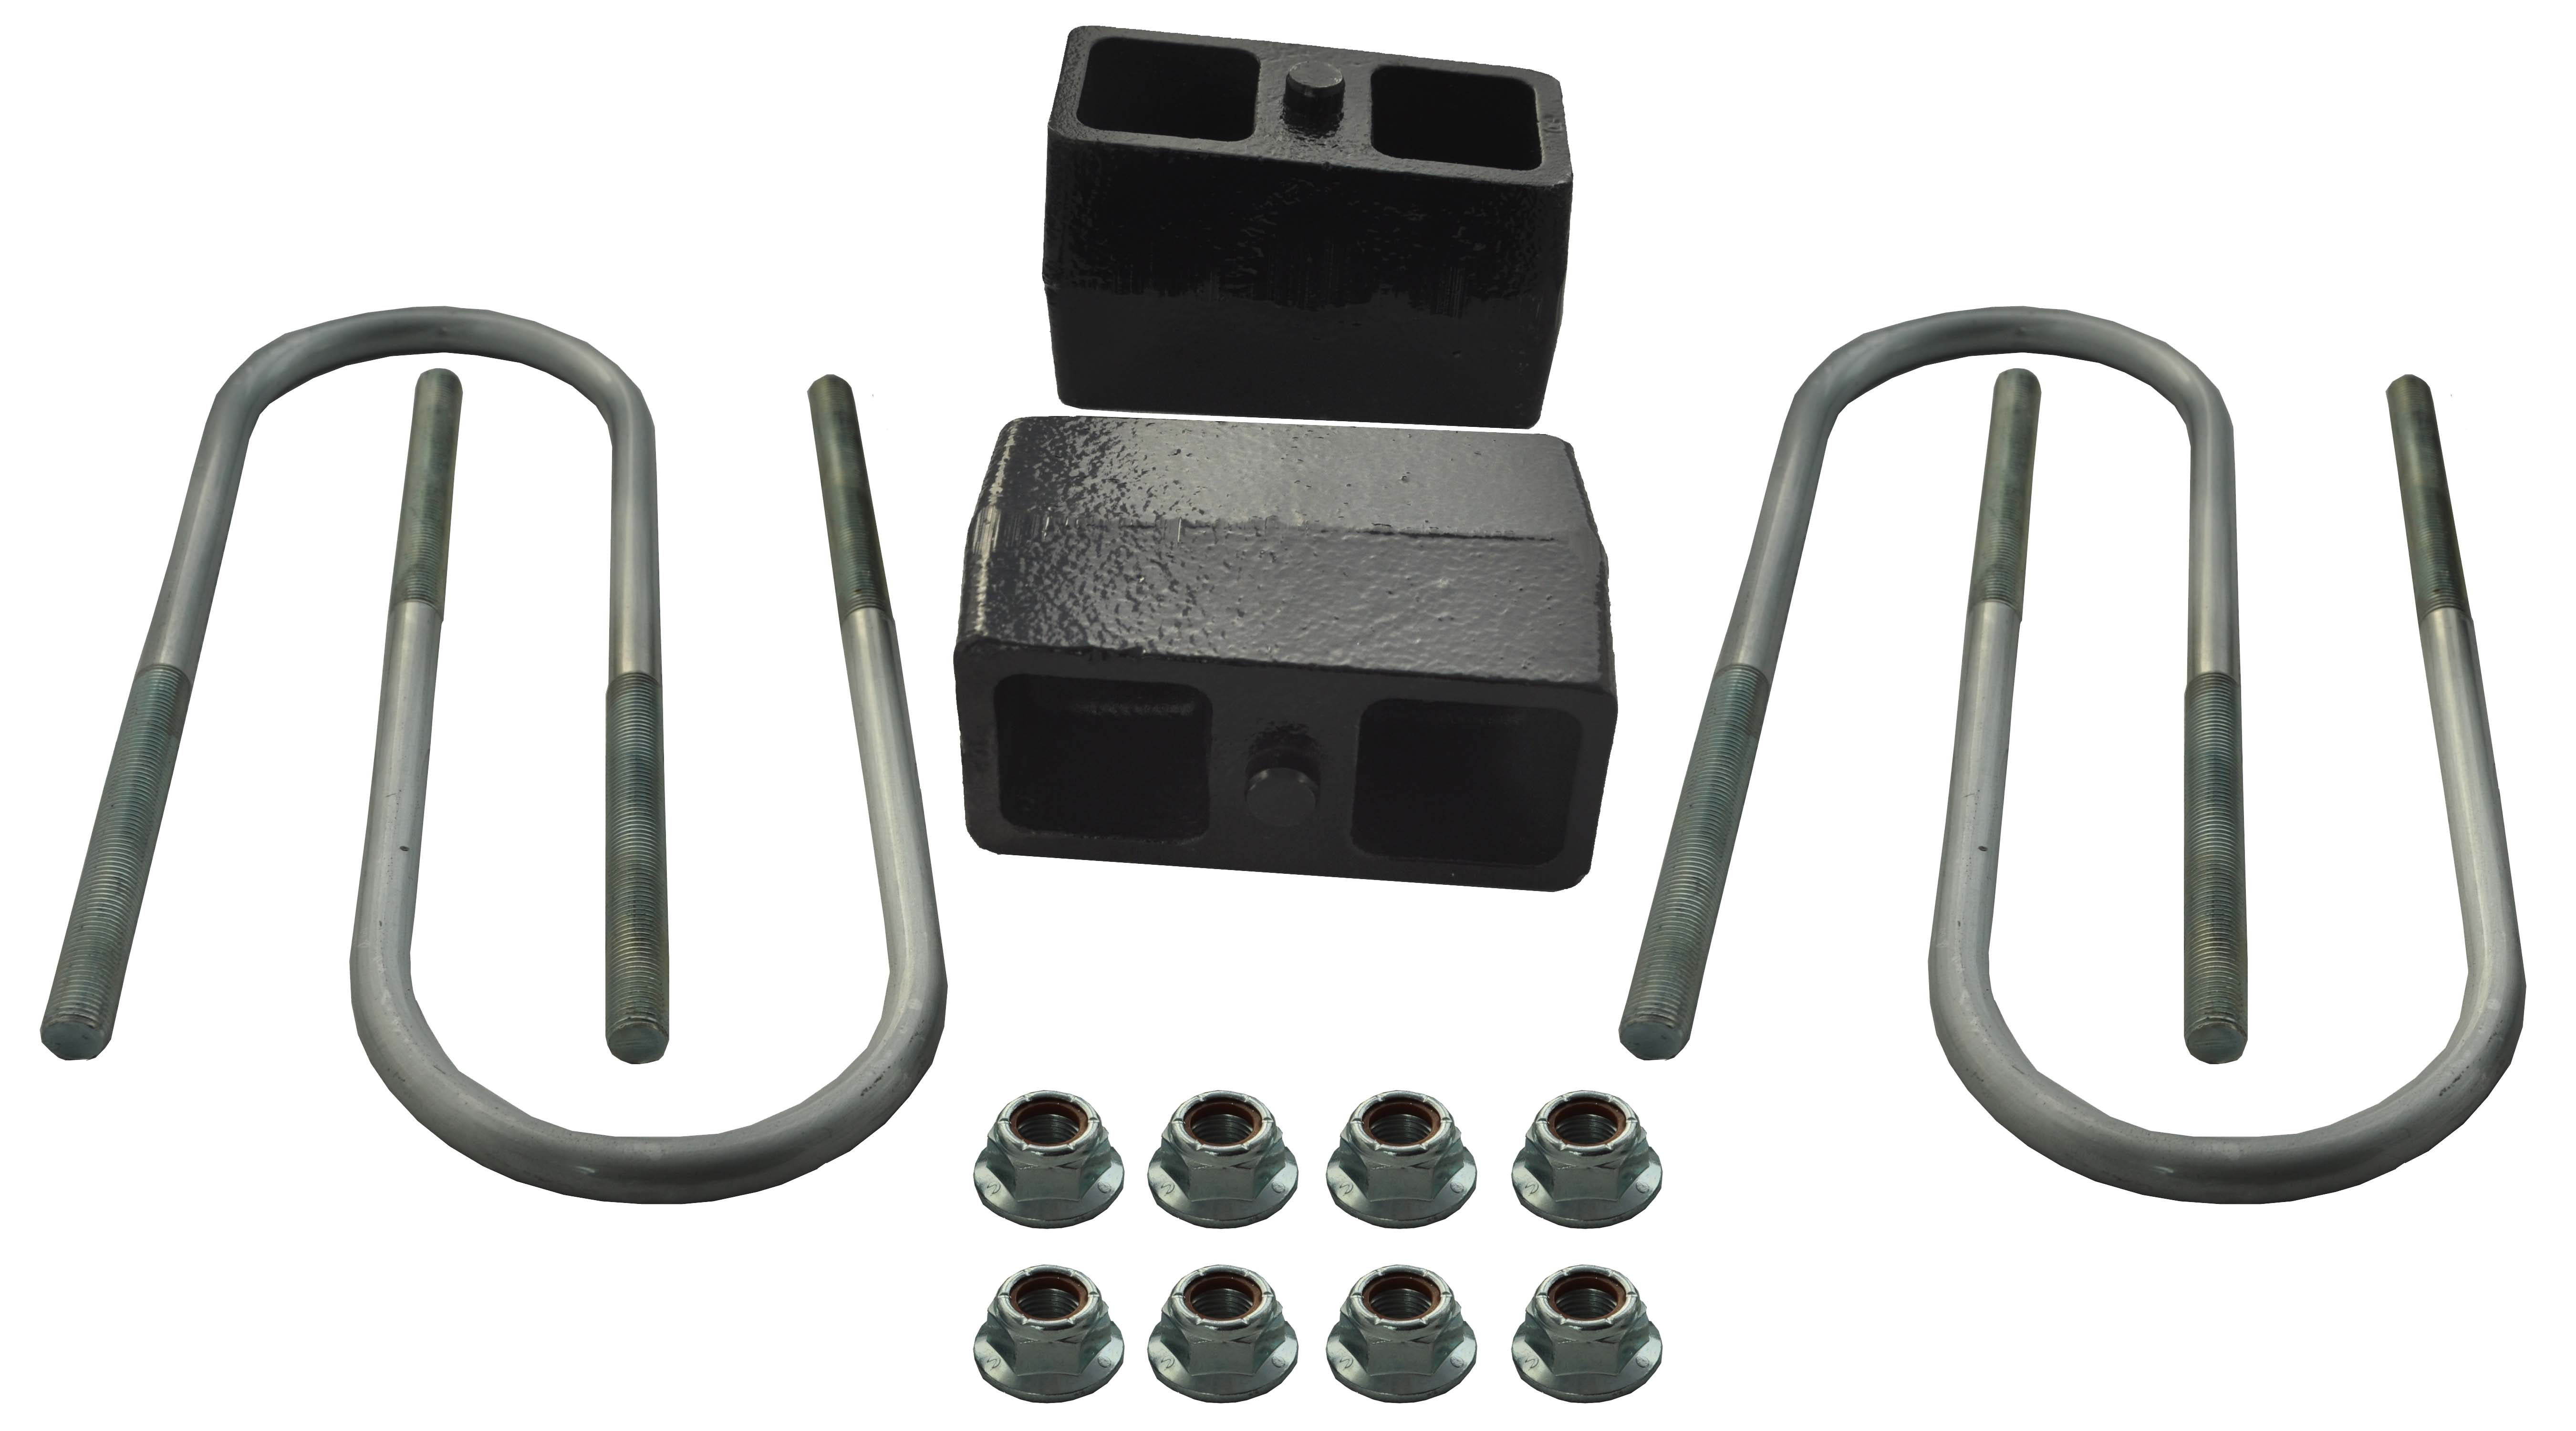 91127 Ground Force Leaf Spring Block Kit 2 Inch Lift